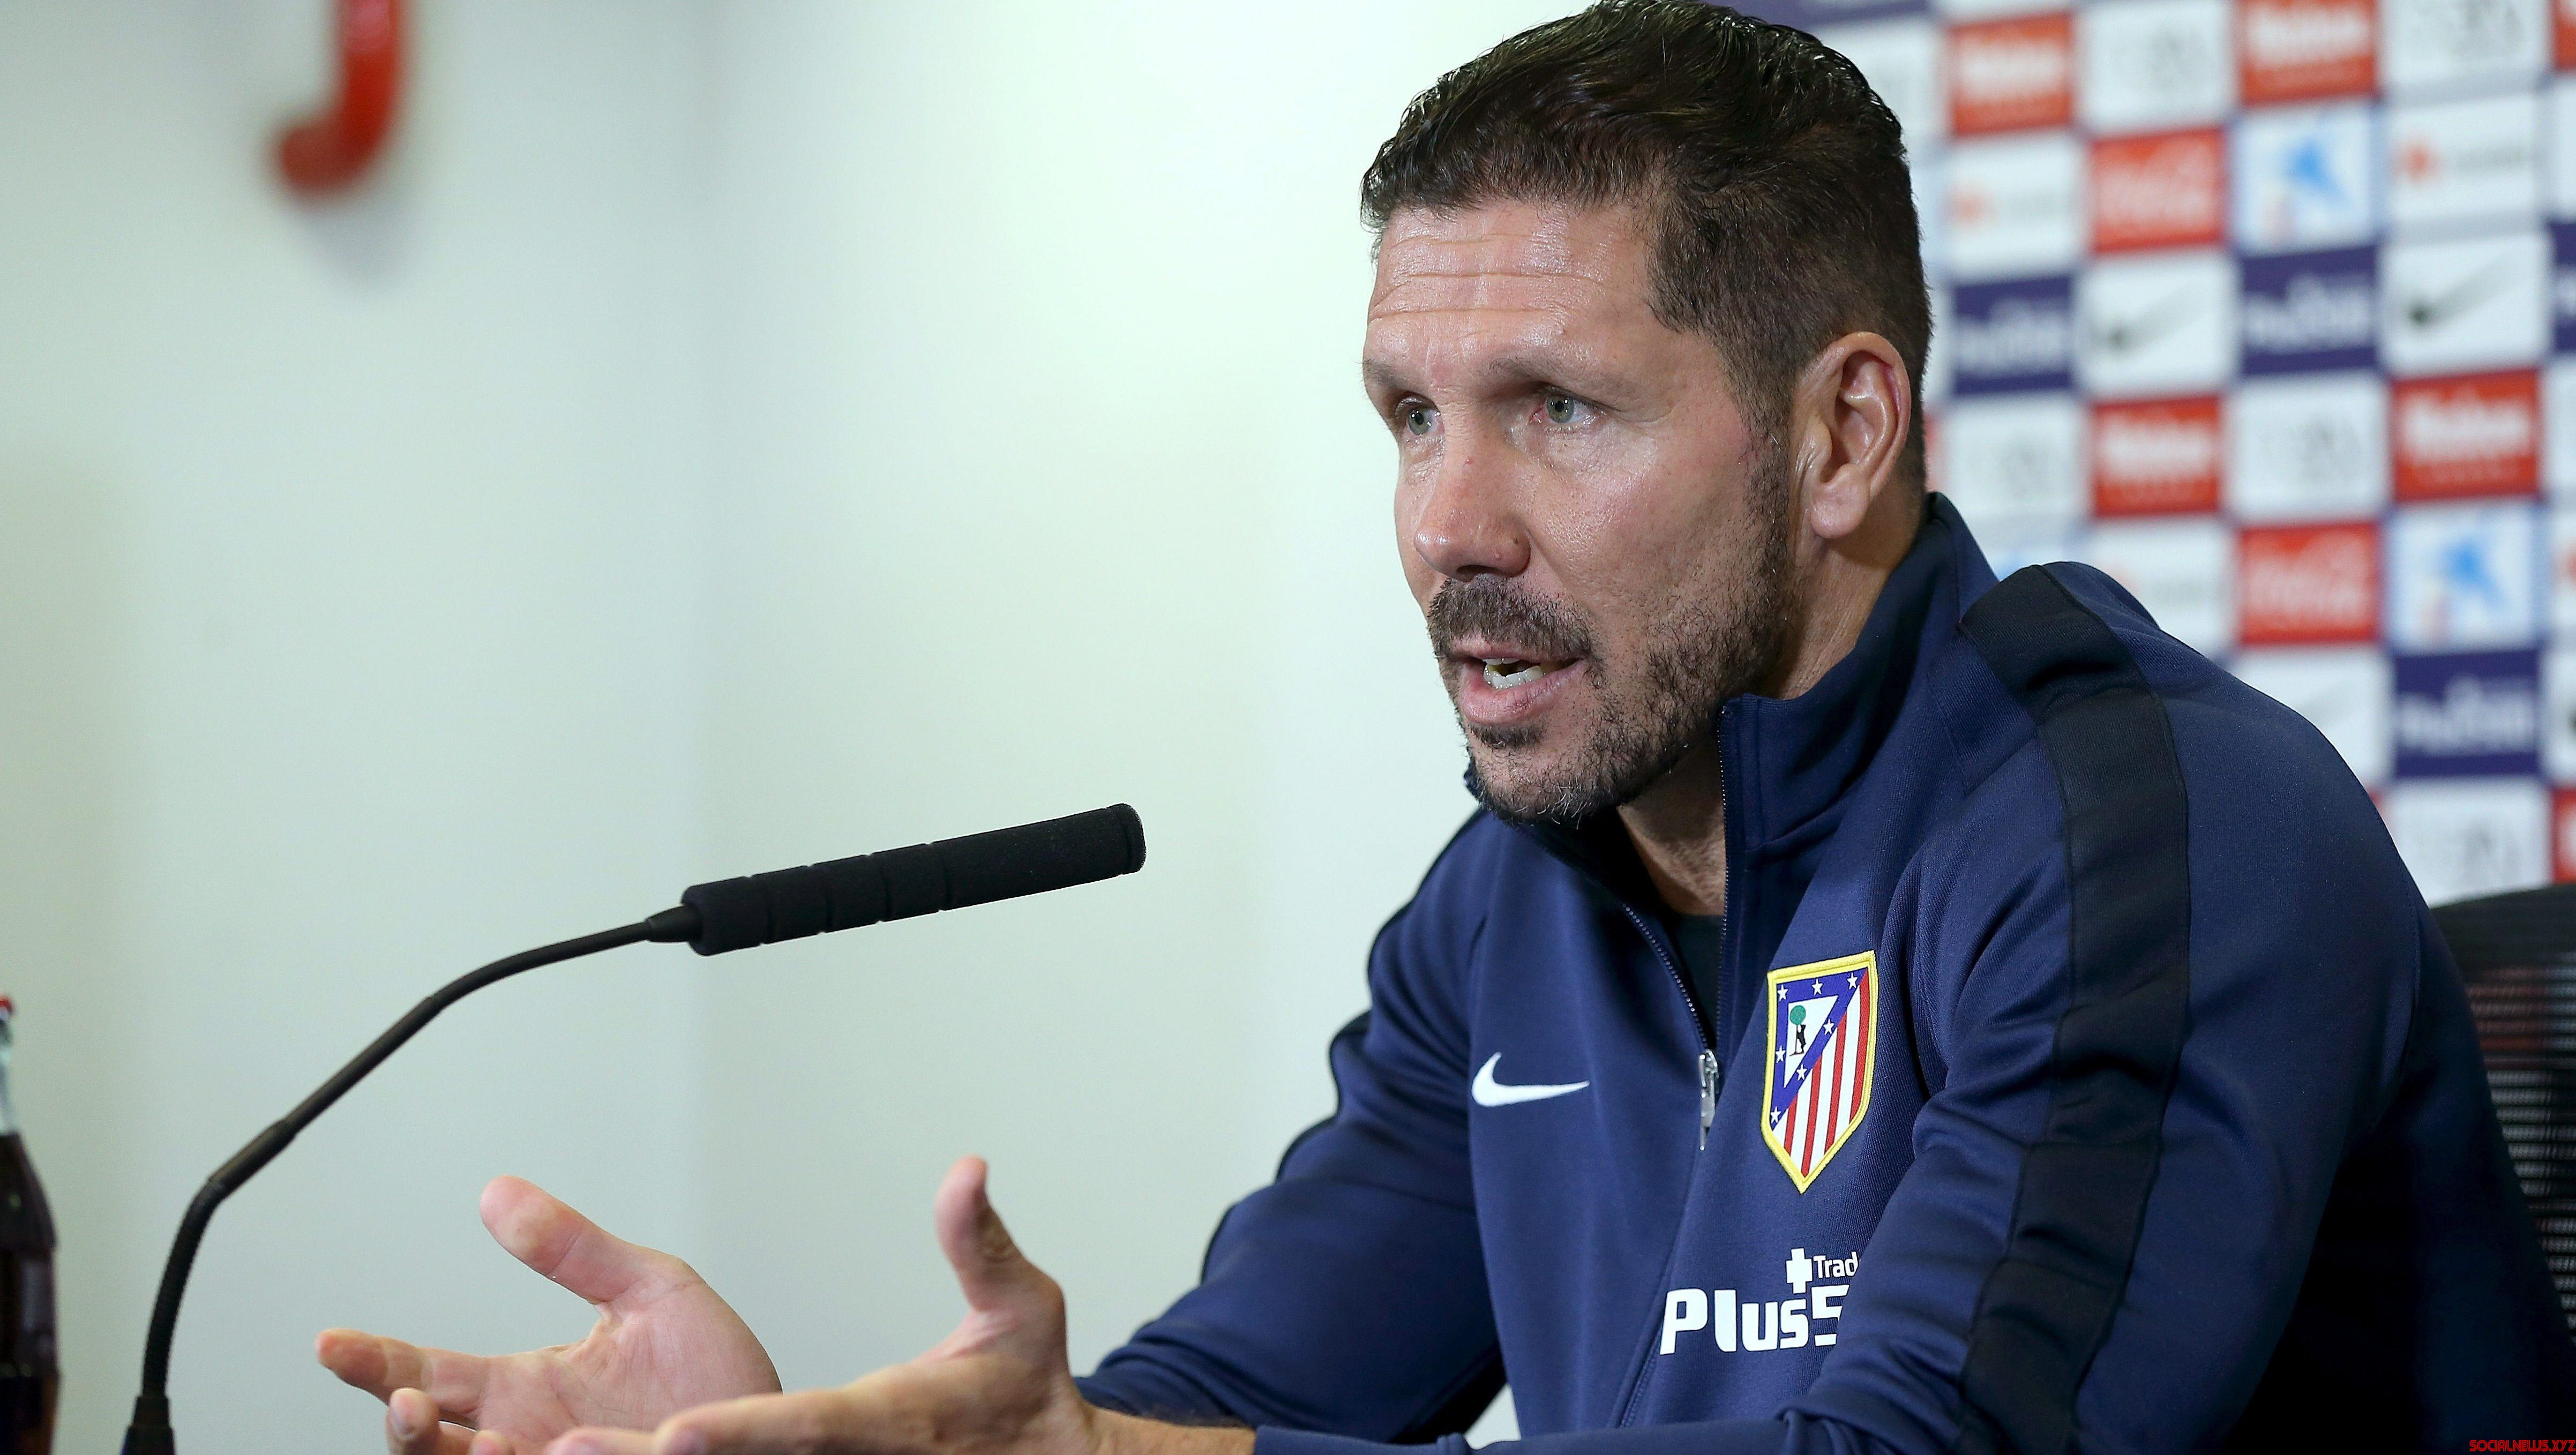 Atletico coach responds to criticism over unimpressive league start